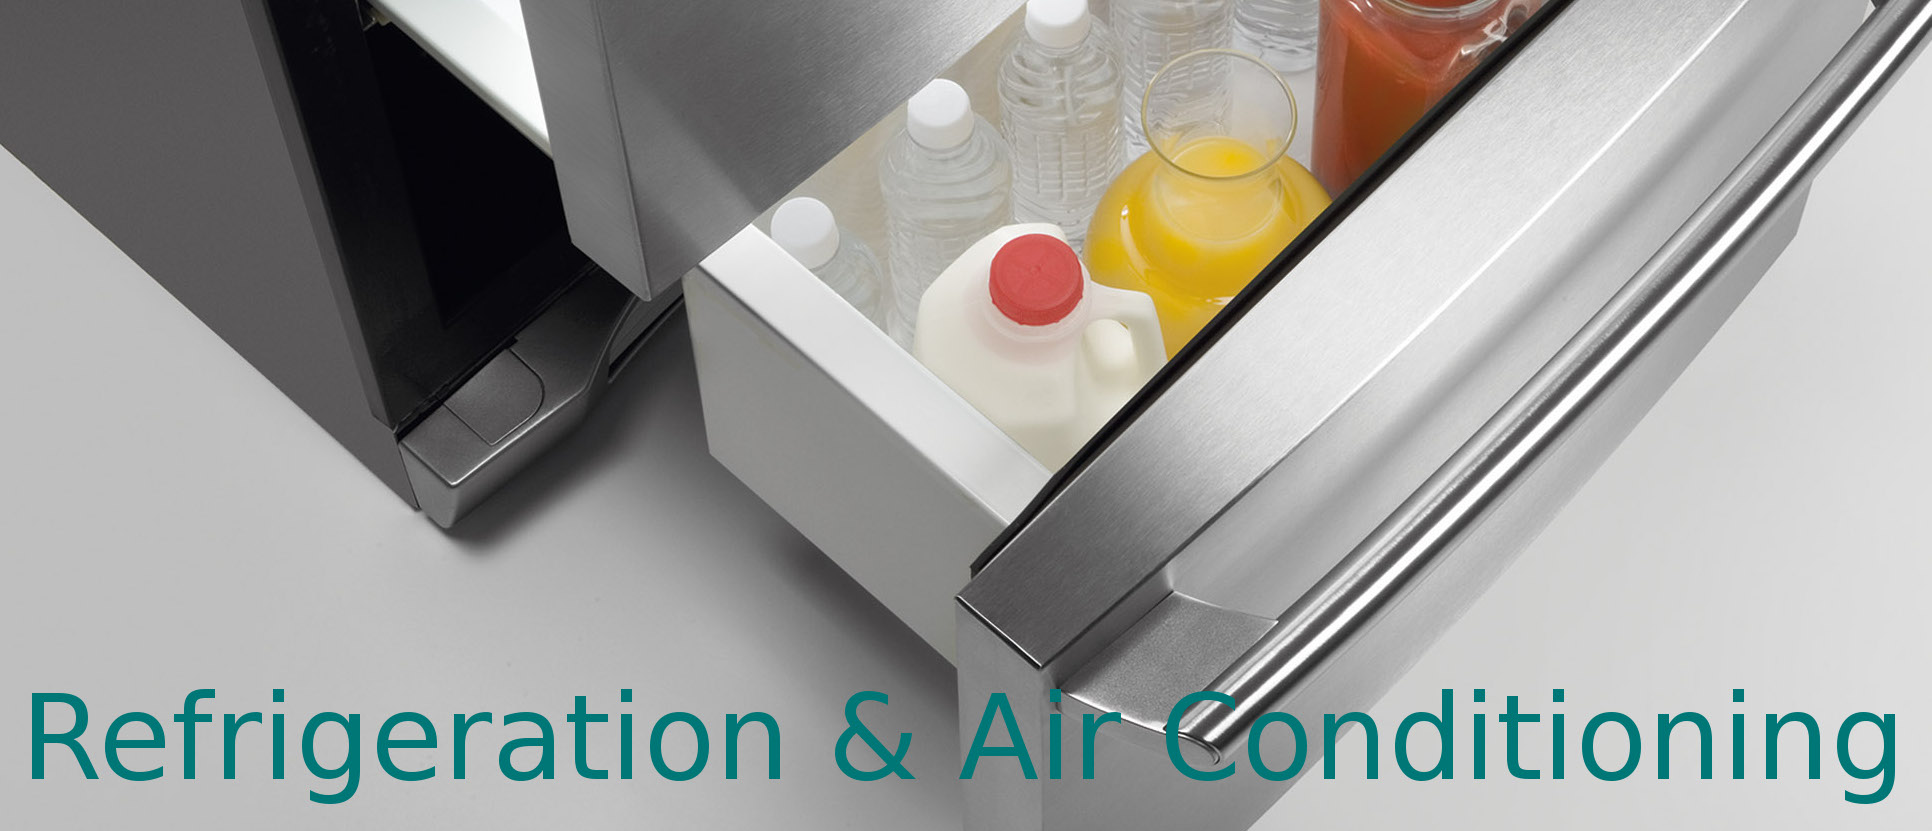 Diploma Refrigeration & Air Conditioning (DRAC)